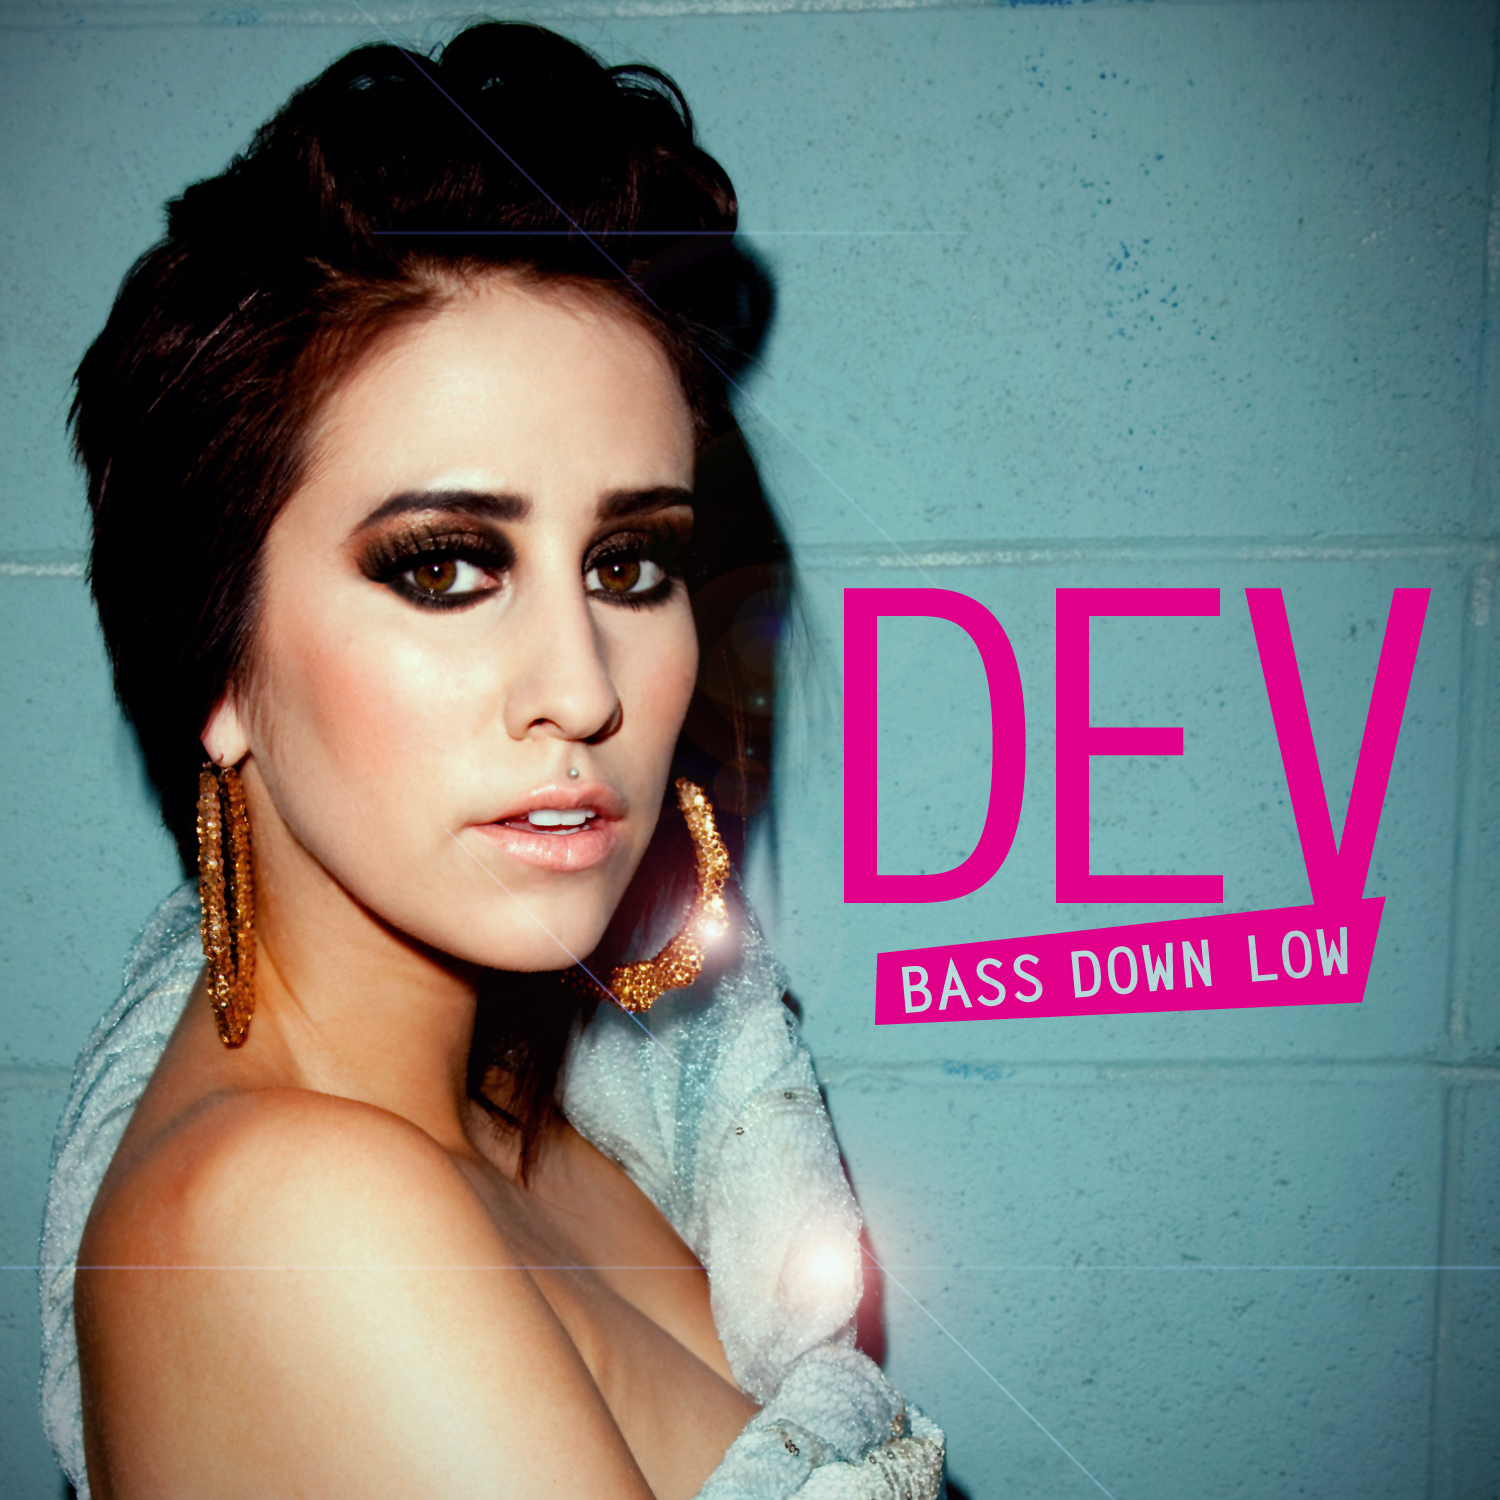 Dev - Bass Down Low (feat. The Cataracs)